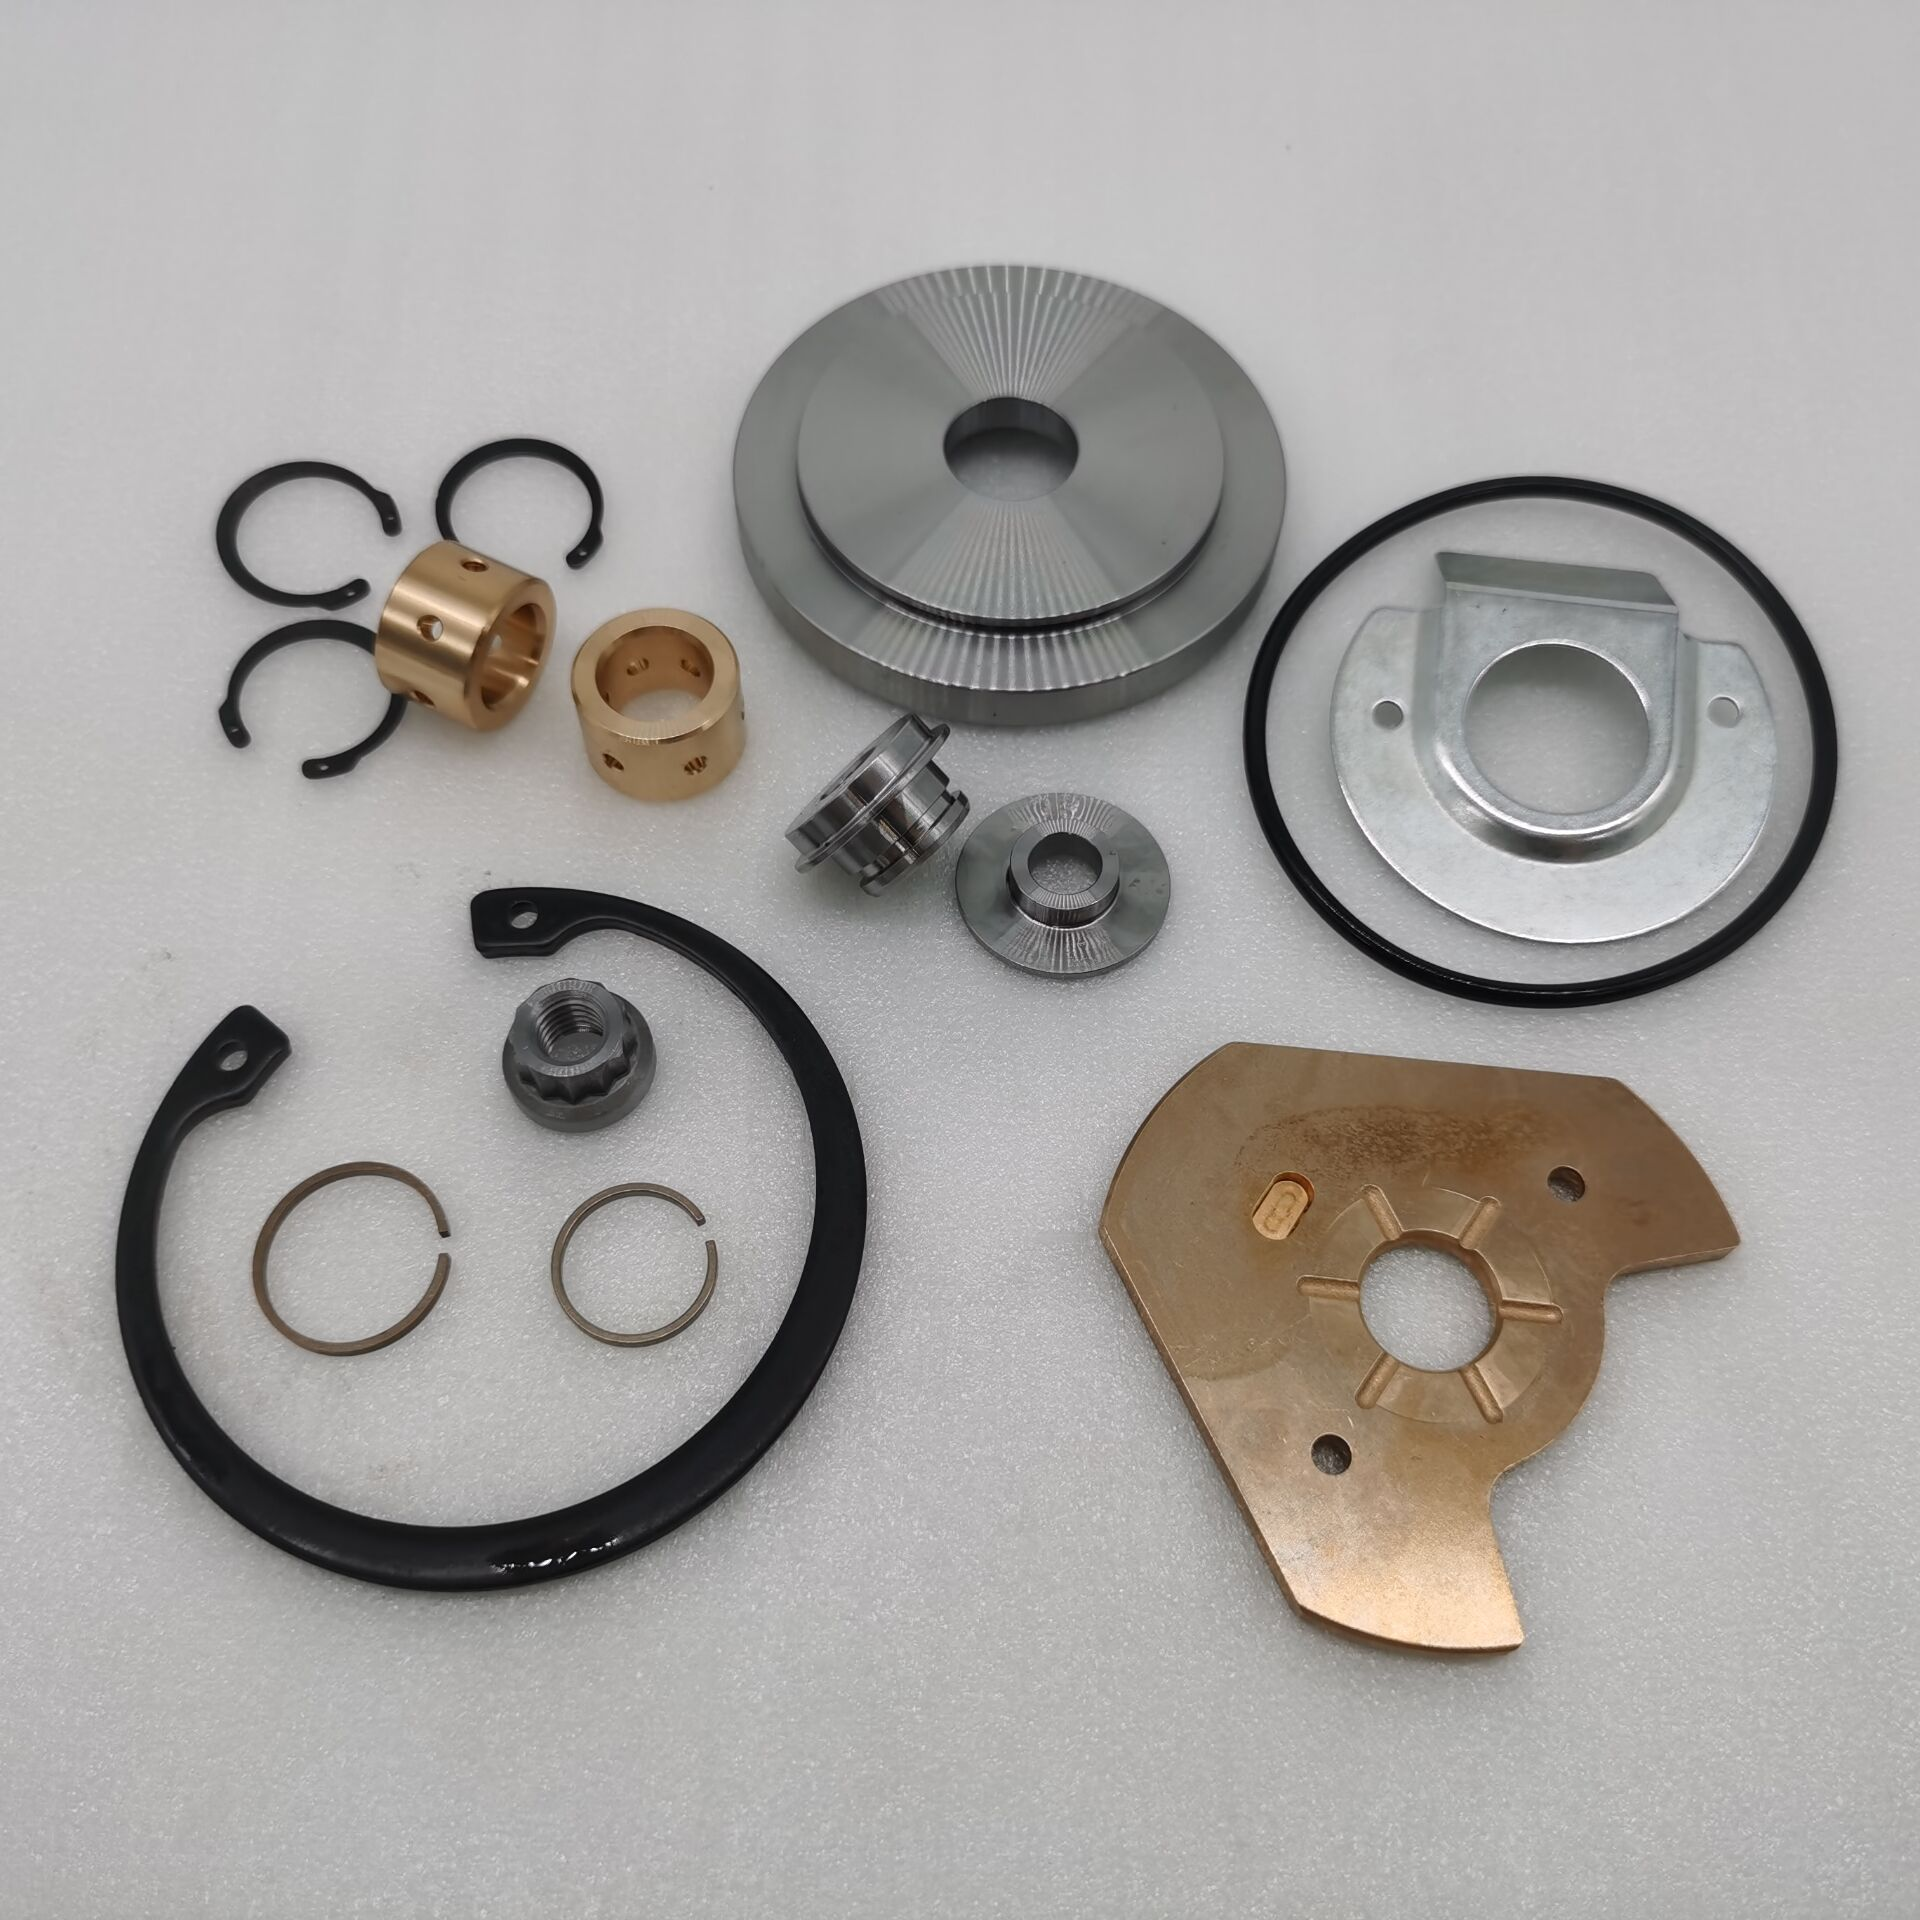 HX50  HX55 HX52 Turbocharger Repair Kits P/N:3545627  twin ring and single ring